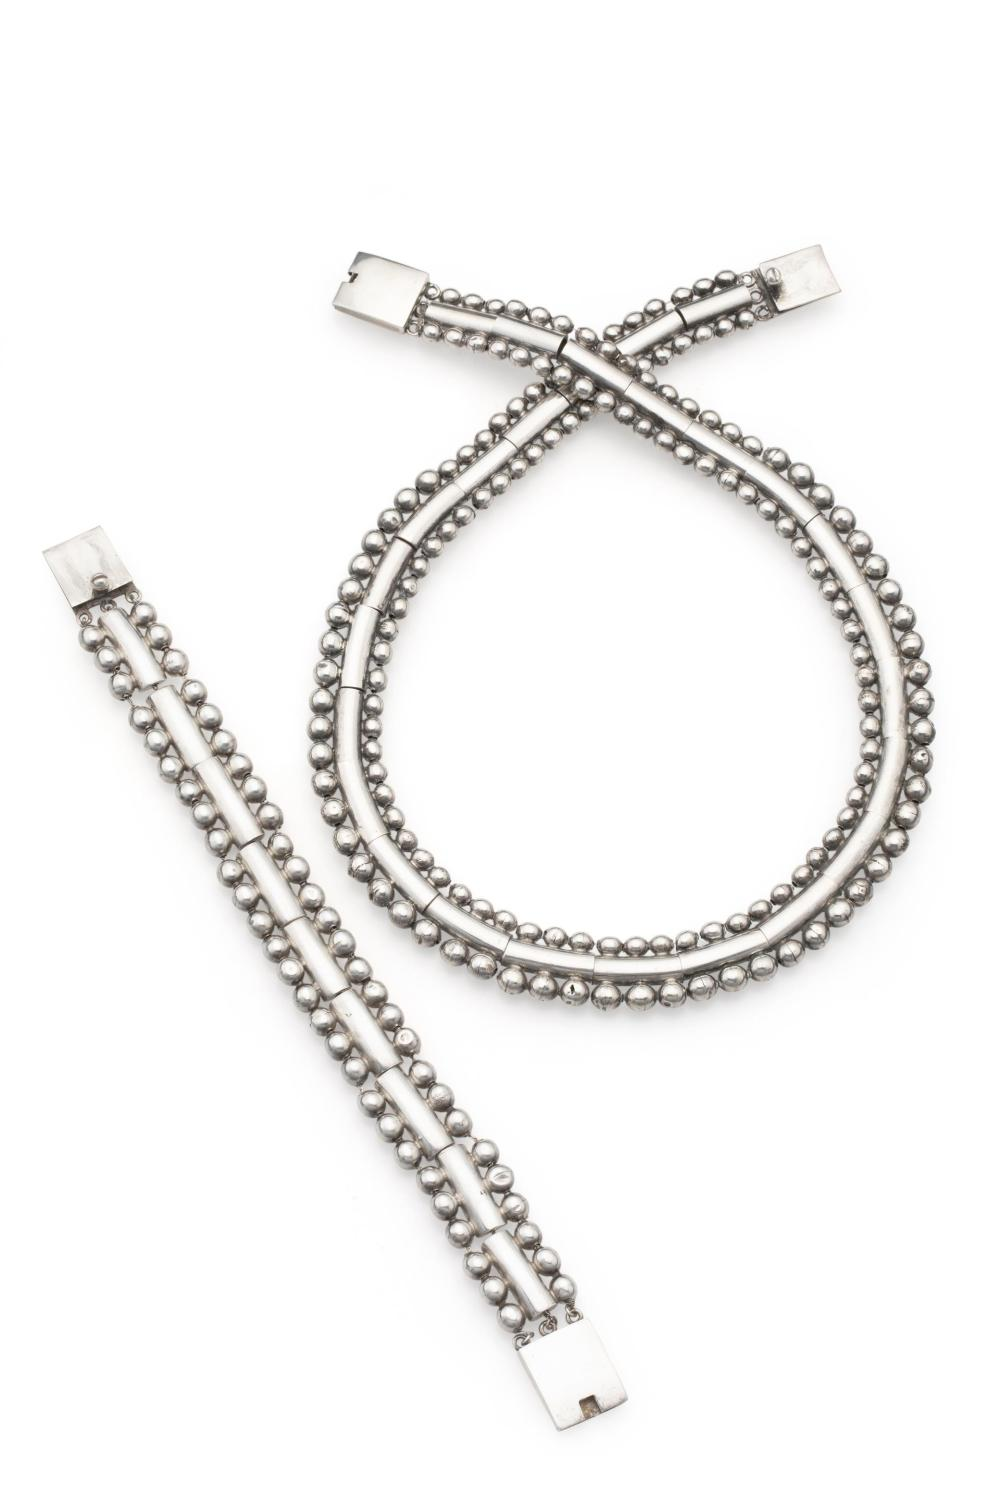 A set of William Spratling sterling silver jewelry